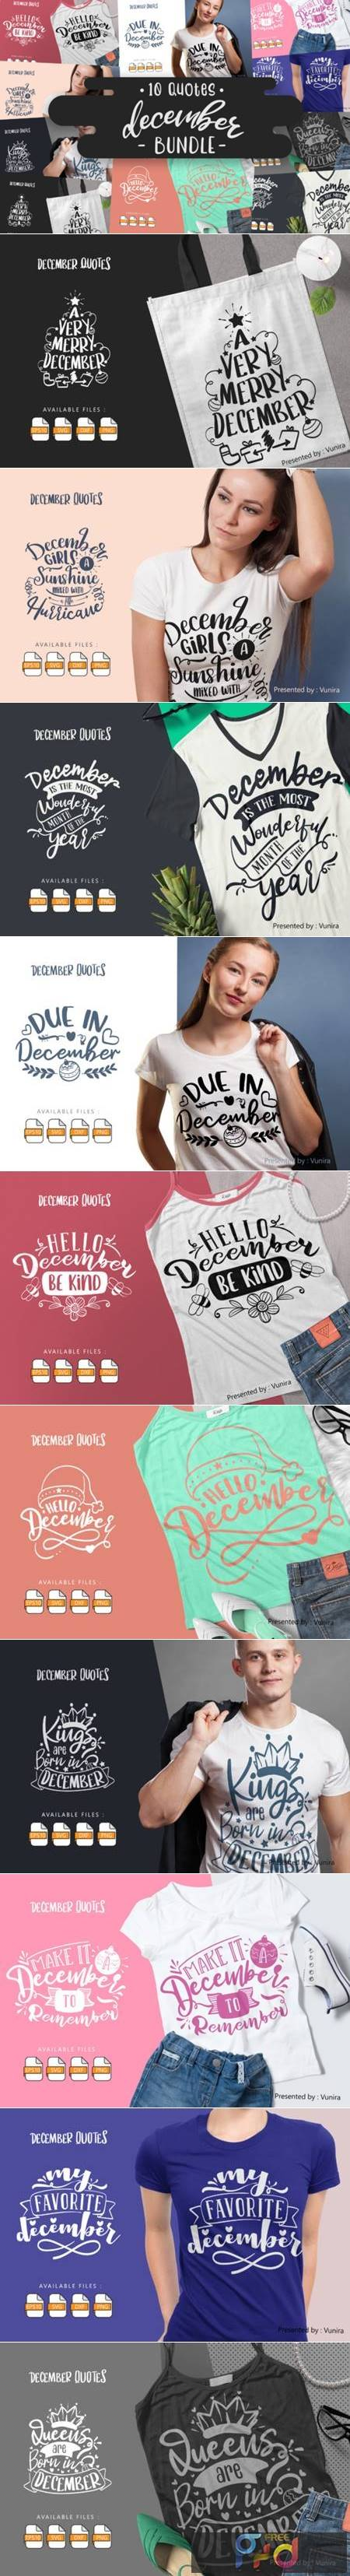 10 December Bundle - Lettering Quotes 7100081 1